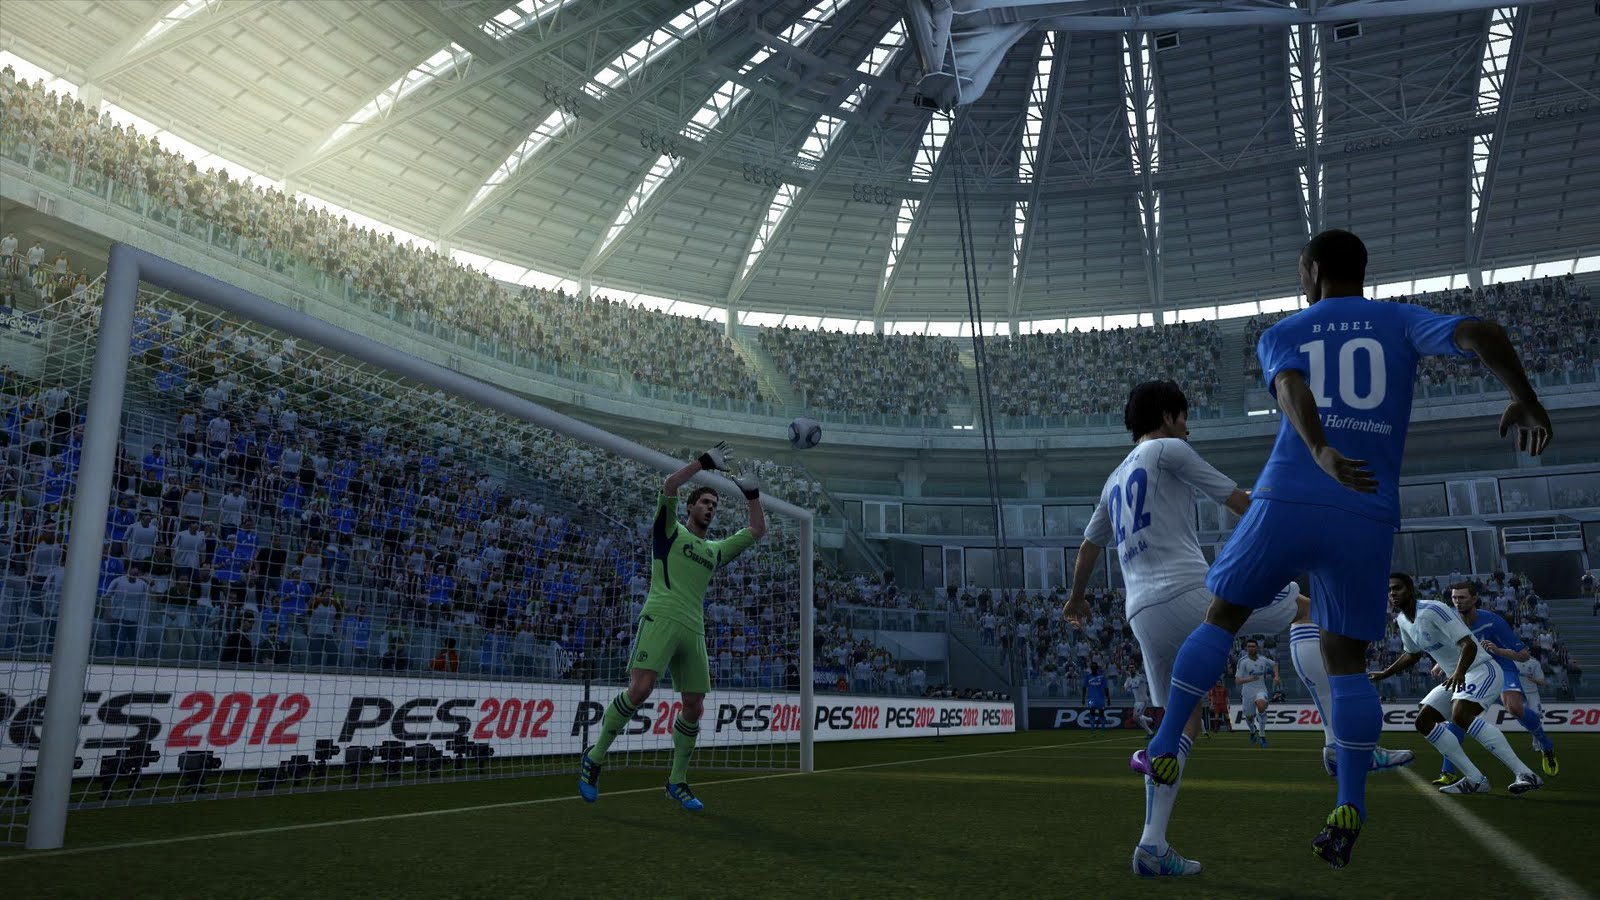 PESEdit PES 2013 Patch 41 - Released! Download